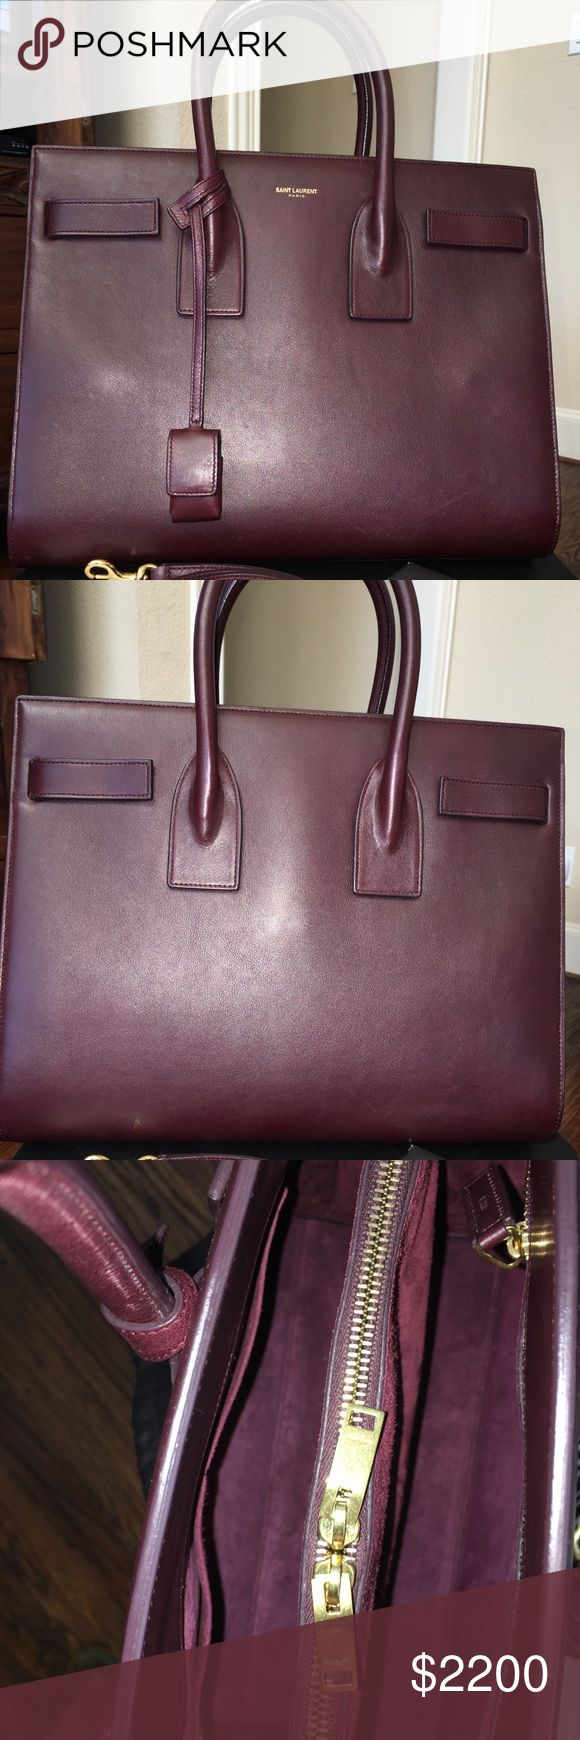 Yves Saint Laurent Sac De Jour Small in Amarena Up for sale this beautiful Saint Laurent Bag with little scratches as seen in pictures. No odor whatsoever, comes from a smoke-free environment! Yves Saint Laurent Bags Satchels